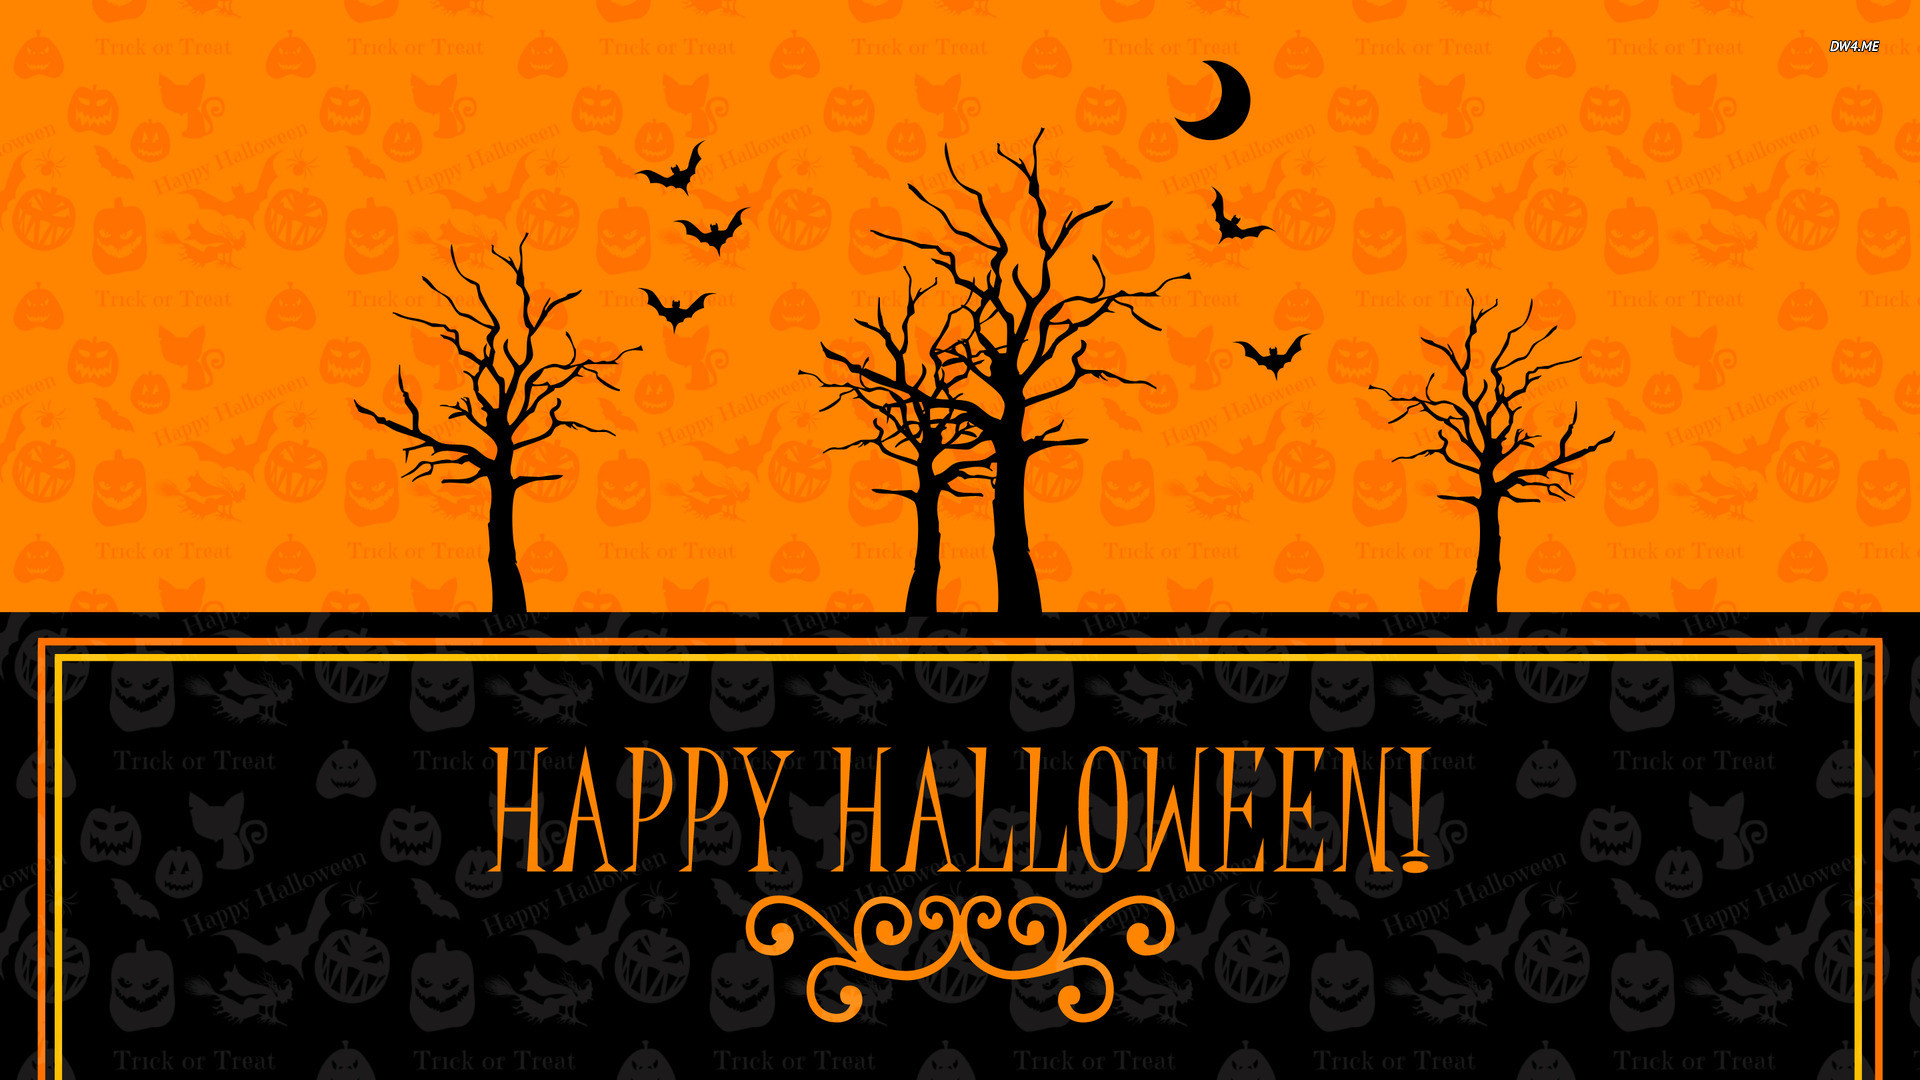 Scary Halloween 2012 Witches HD Wallpaper 2